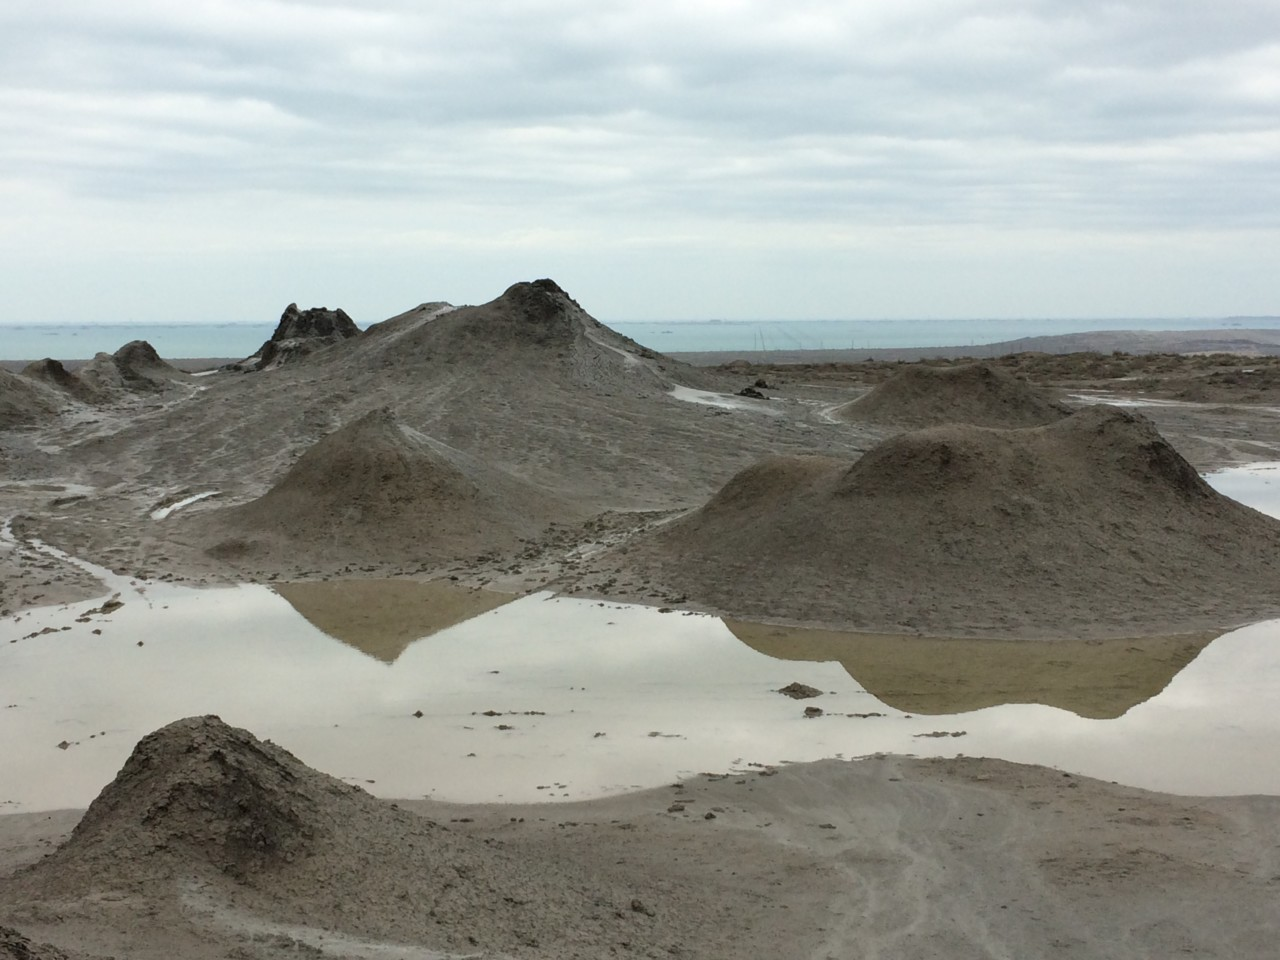 More mud volcanoes